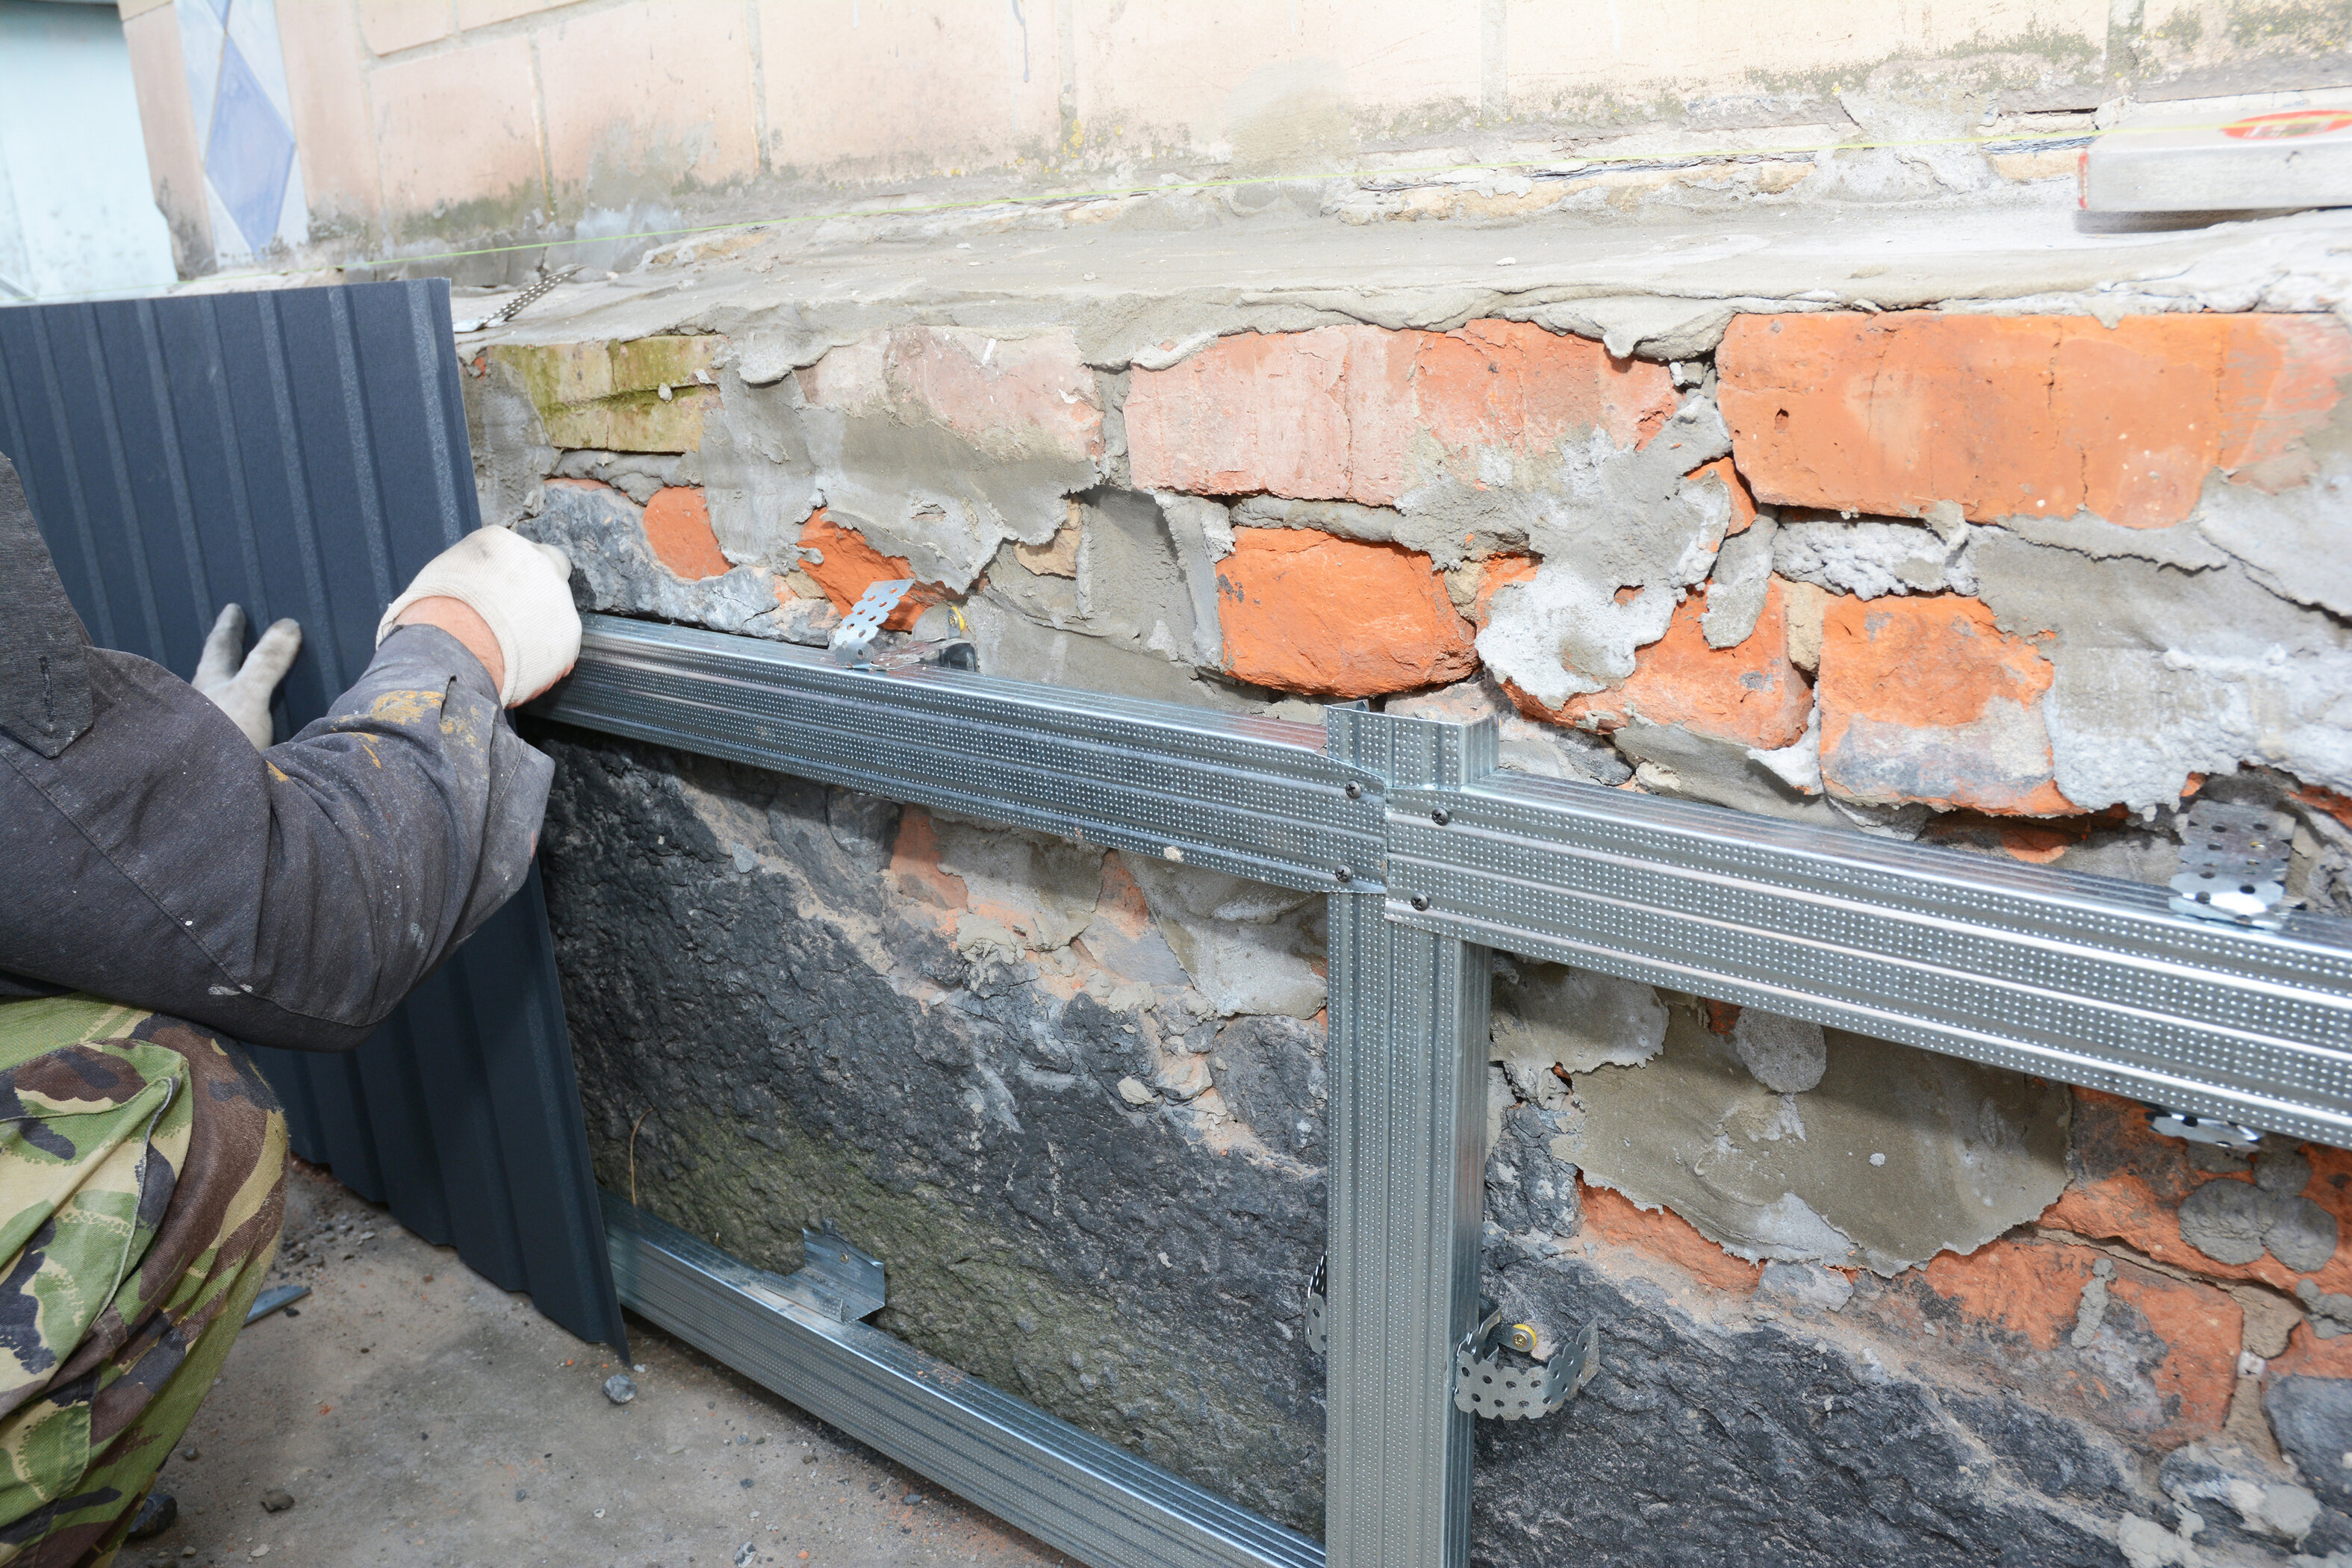 A foundation repair specialist repairing the brick foundation of a home with steel rods.